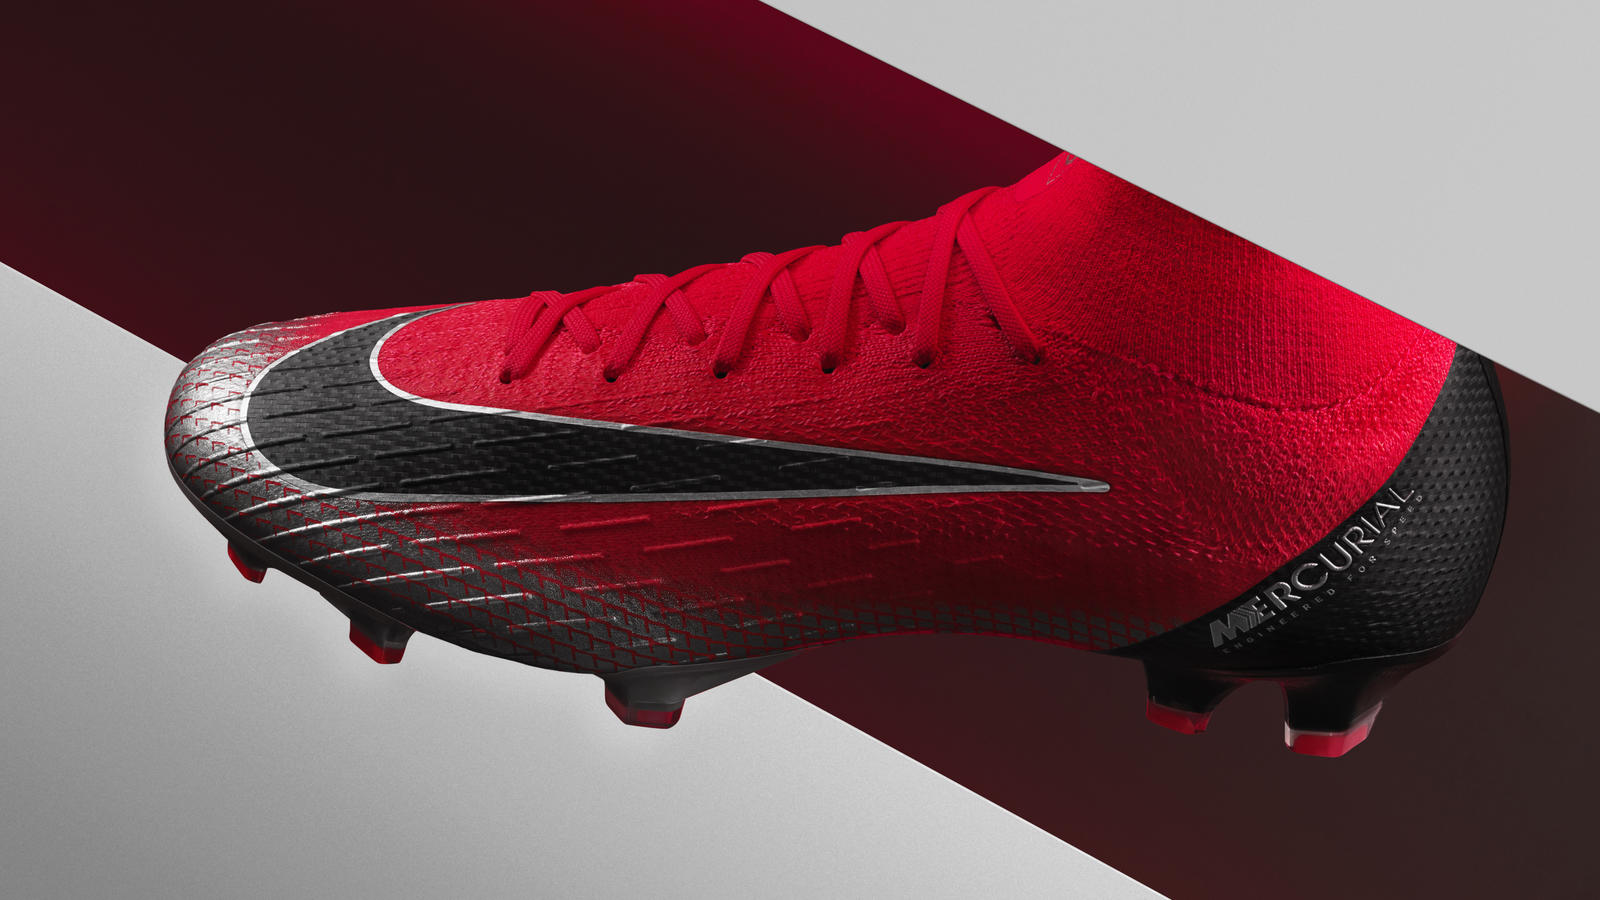 timeless design 21c6f b3c8d Nike Mercurial Superfly 360 CR7